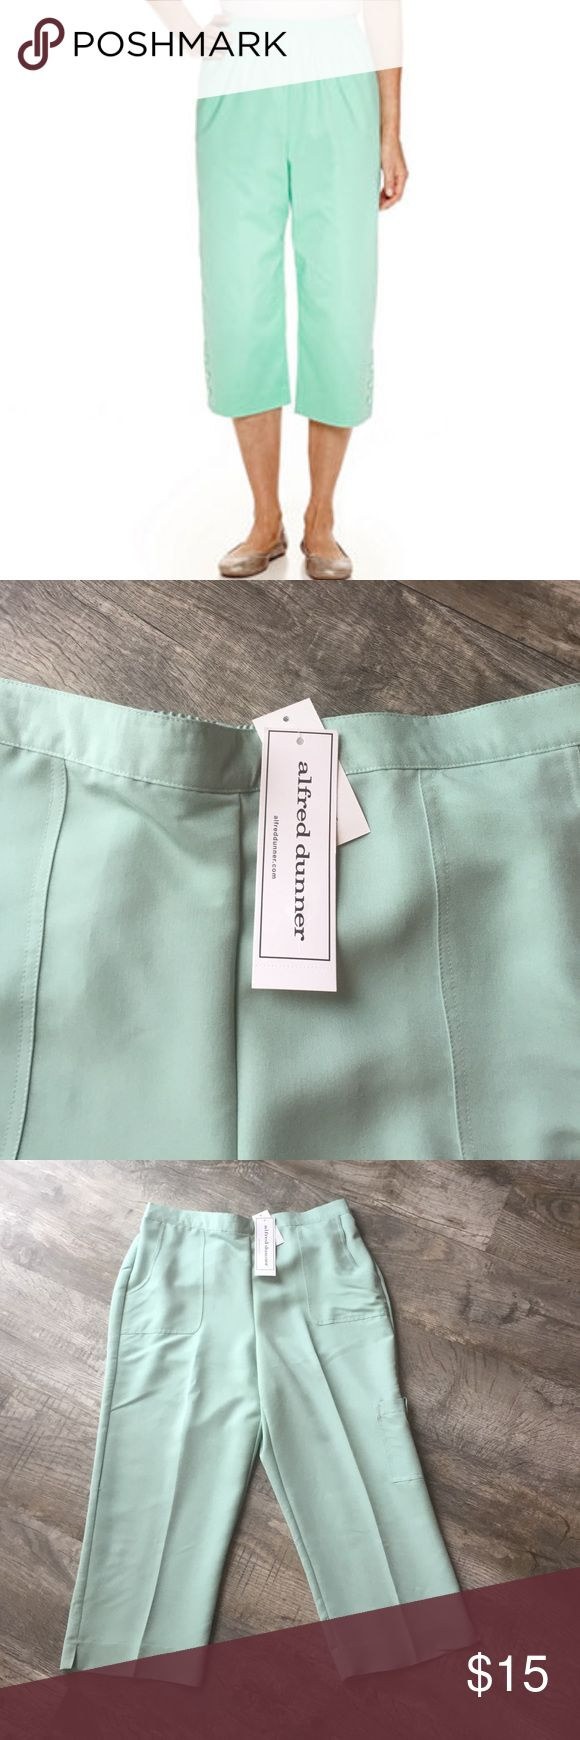 Sale Alfred dunner mint Capri pants sz 12 nwt Alfred dunner mint Capri pants sz 12 nwt  retail 48 brand new with tags pet free smoke free home Alfred Dunner Pants